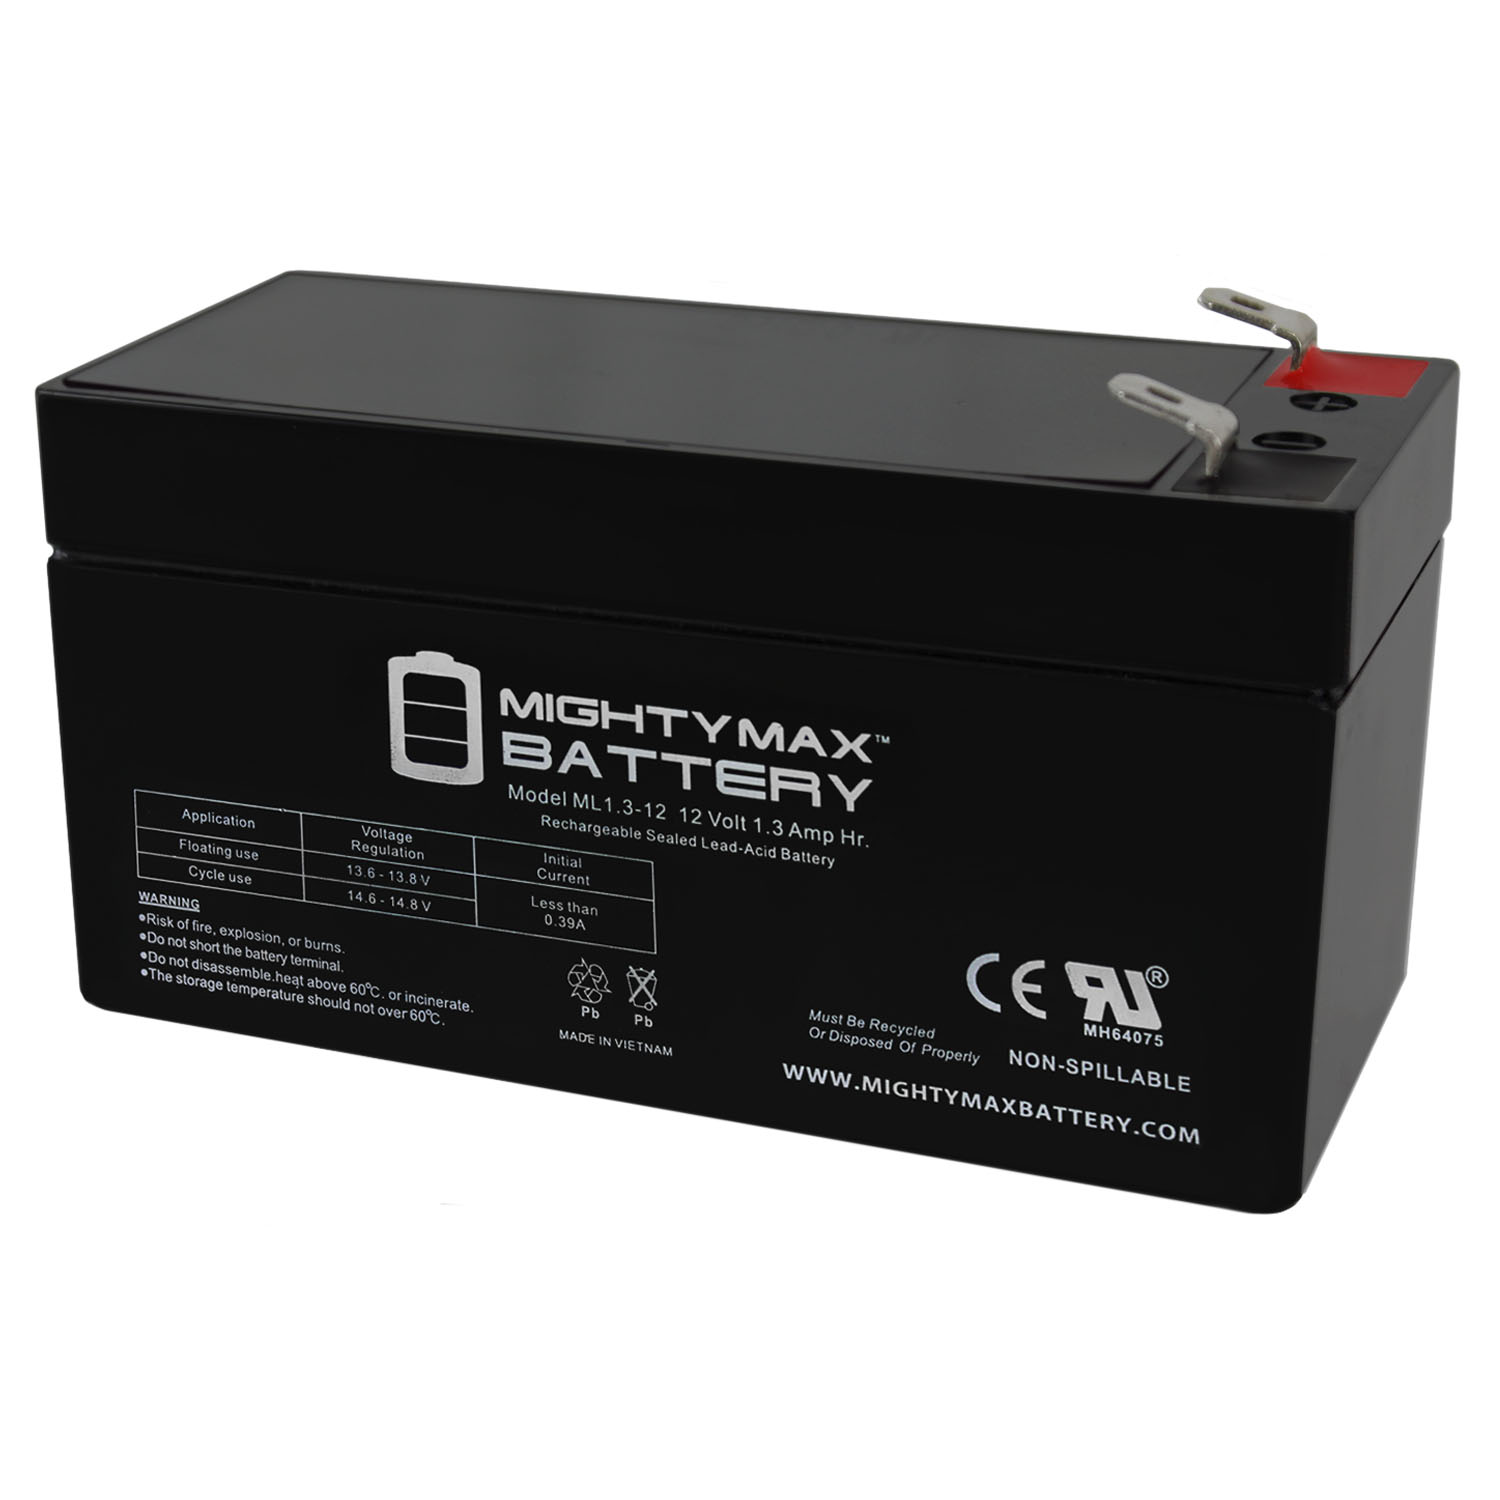 ML1.3-12 - 12 VOLT 1.3 AH SLA BATTERY